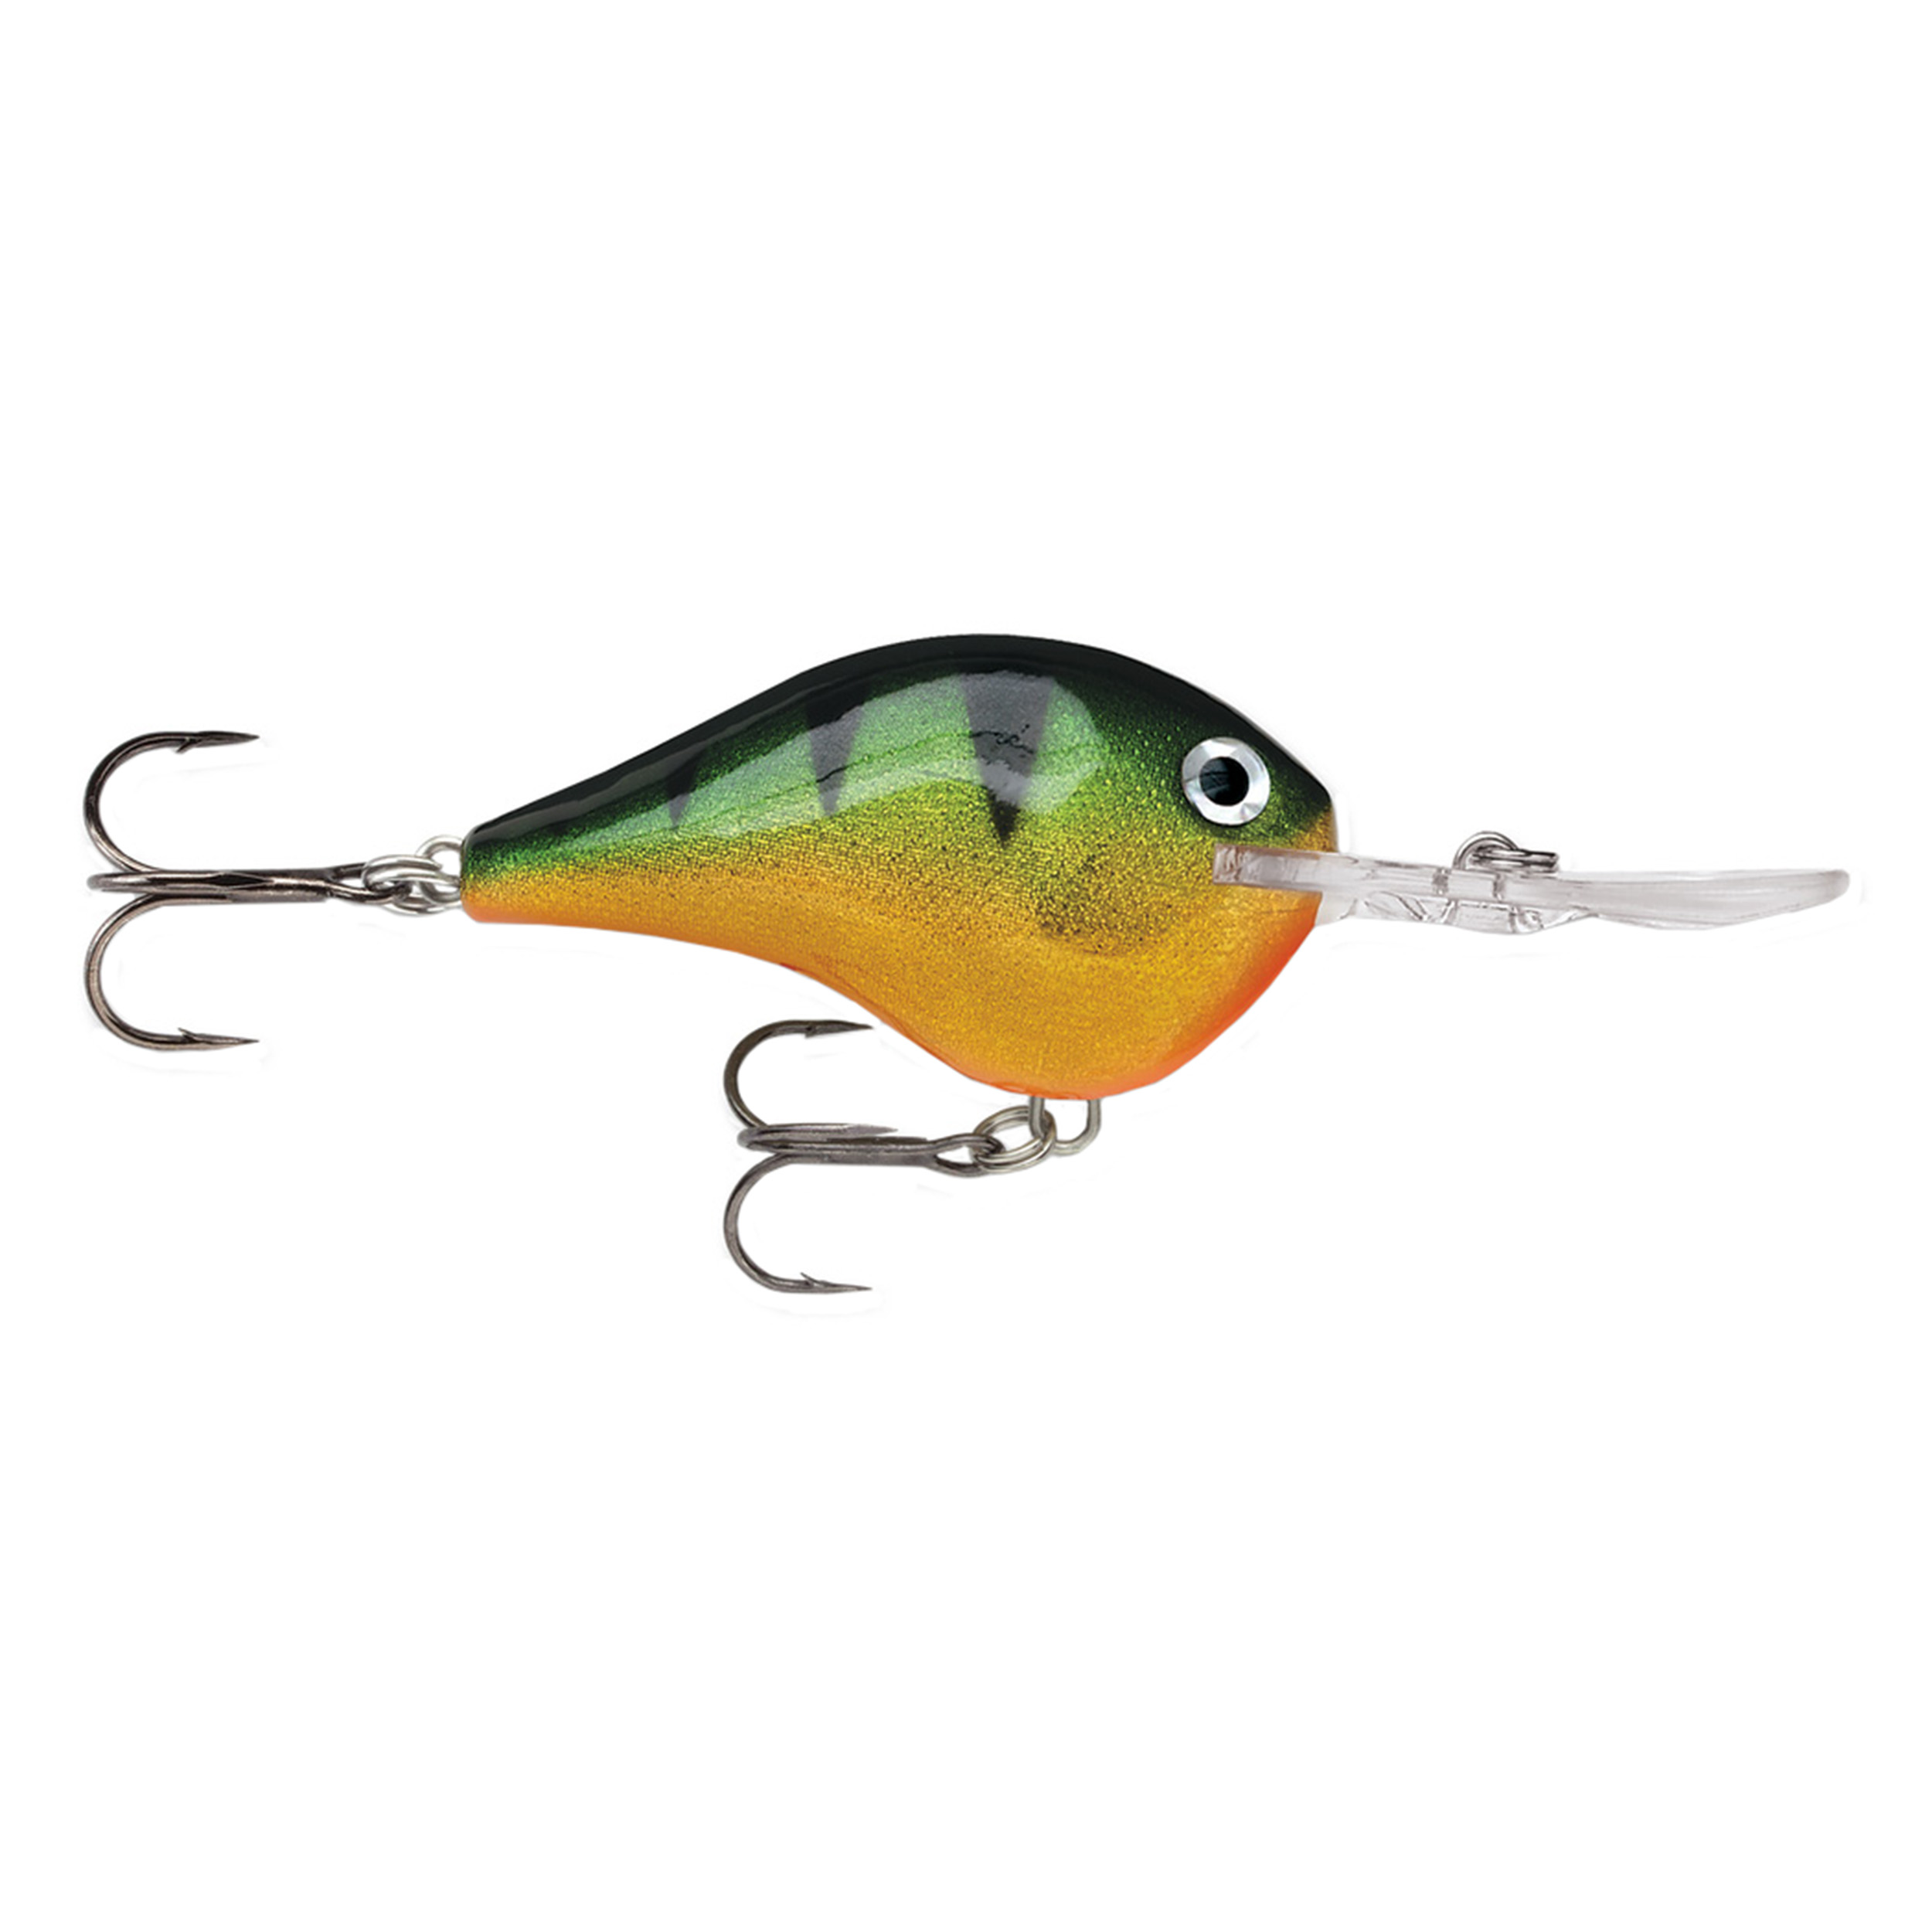 "Rapala Dives-To Series Custom Ink Lure Size 04, 2"" Length, 4' Depth, 2 Number 6 Treble Hooks, Perch, Per 1 by Rapala"